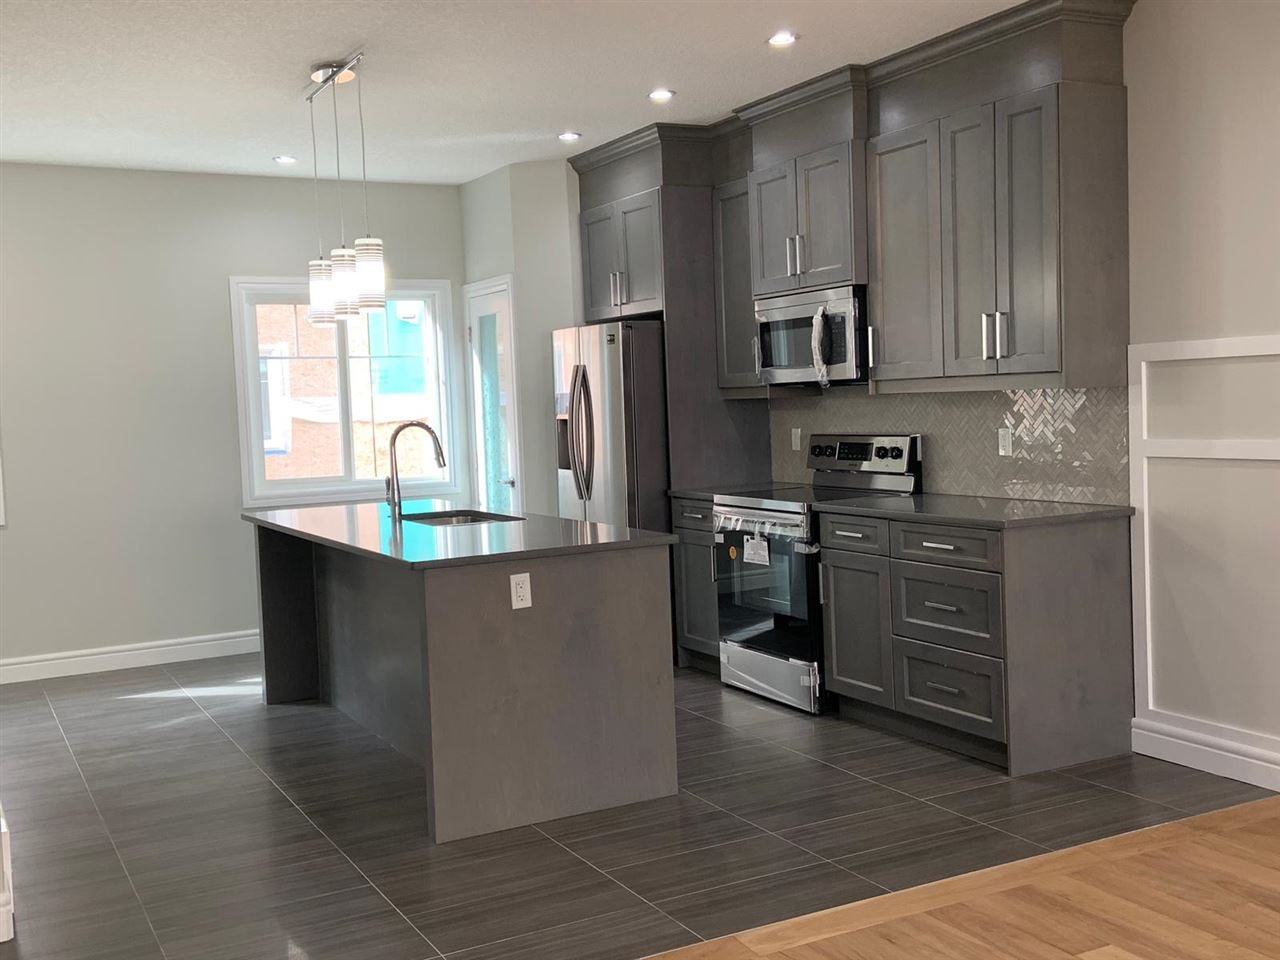 MLS® listing #E4168464 for sale located at #37 2803 14 Avenue